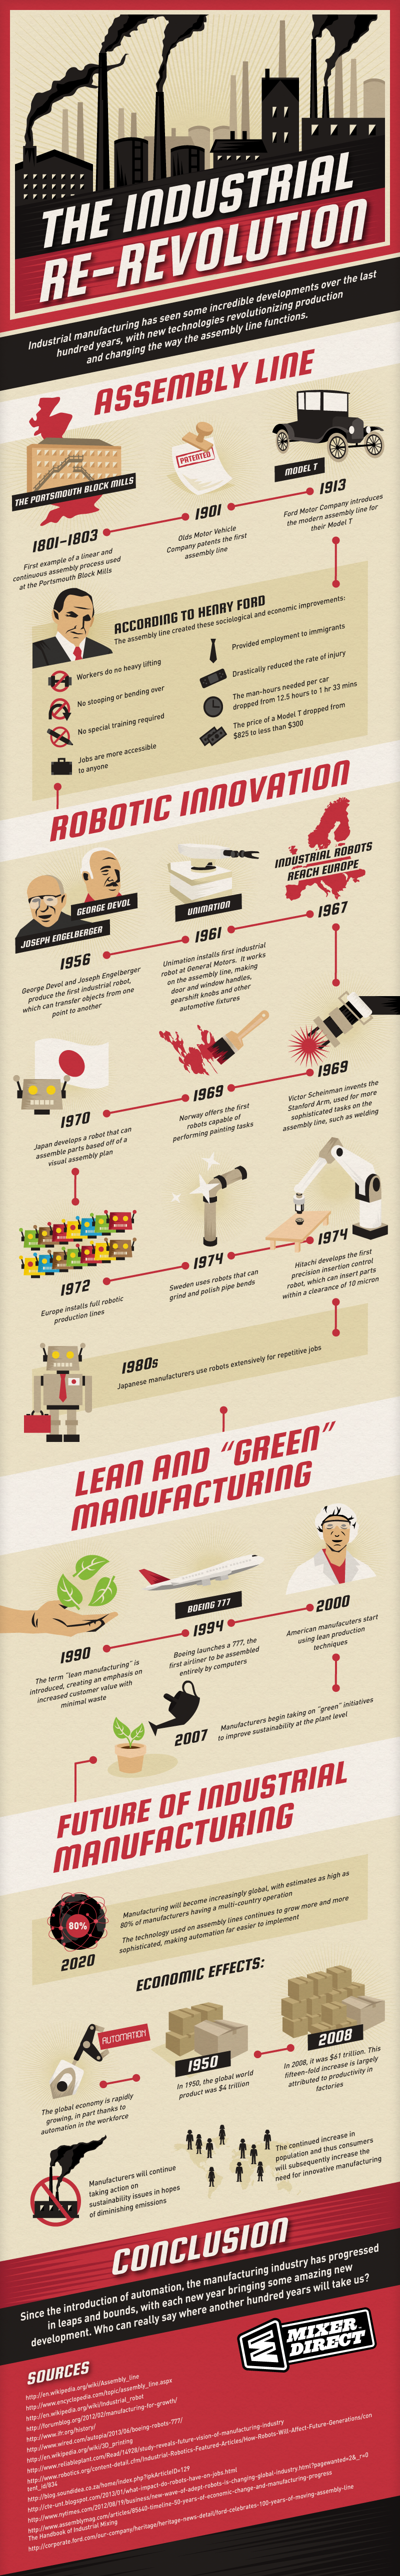 factories during the industrial revolution gave off many pollens industrial re revolution infographic